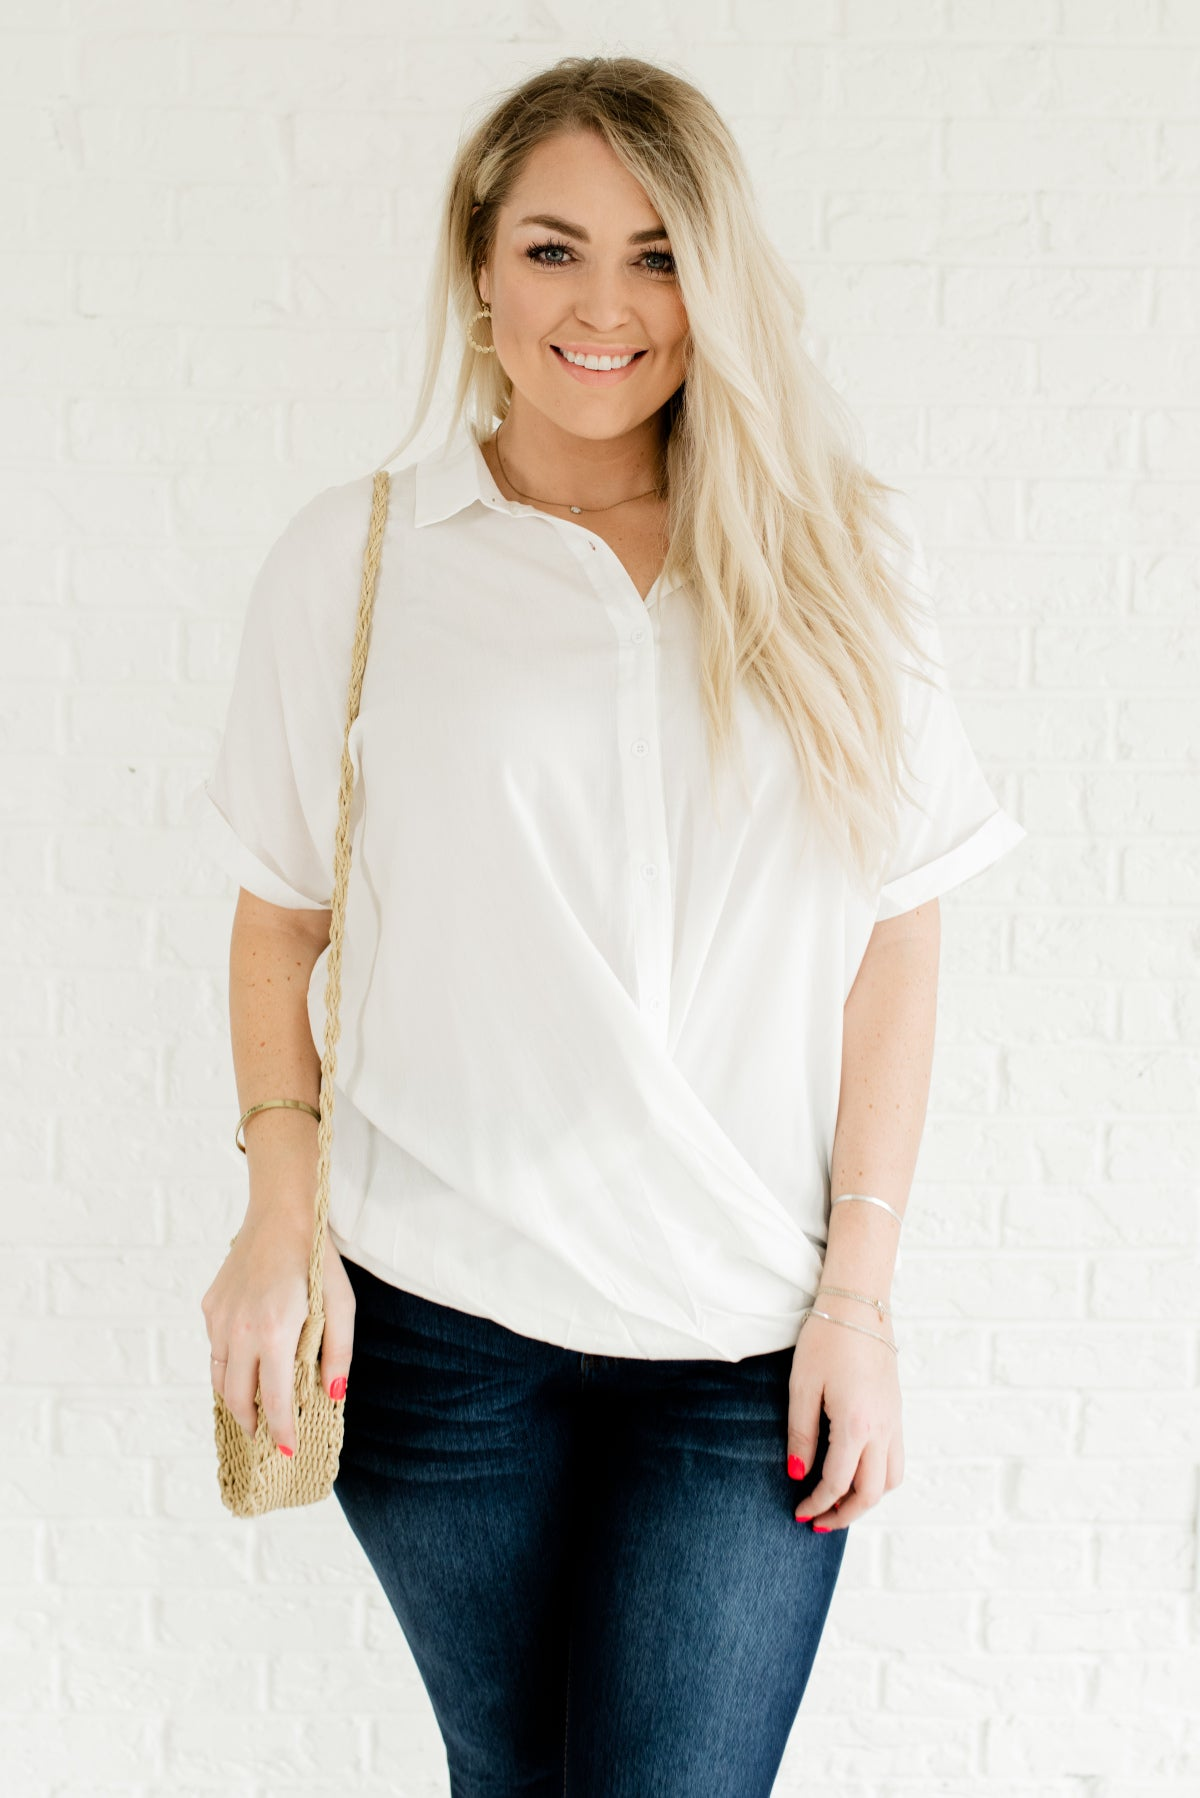 White Button-Up Plus Size Boutique Shirts for Women